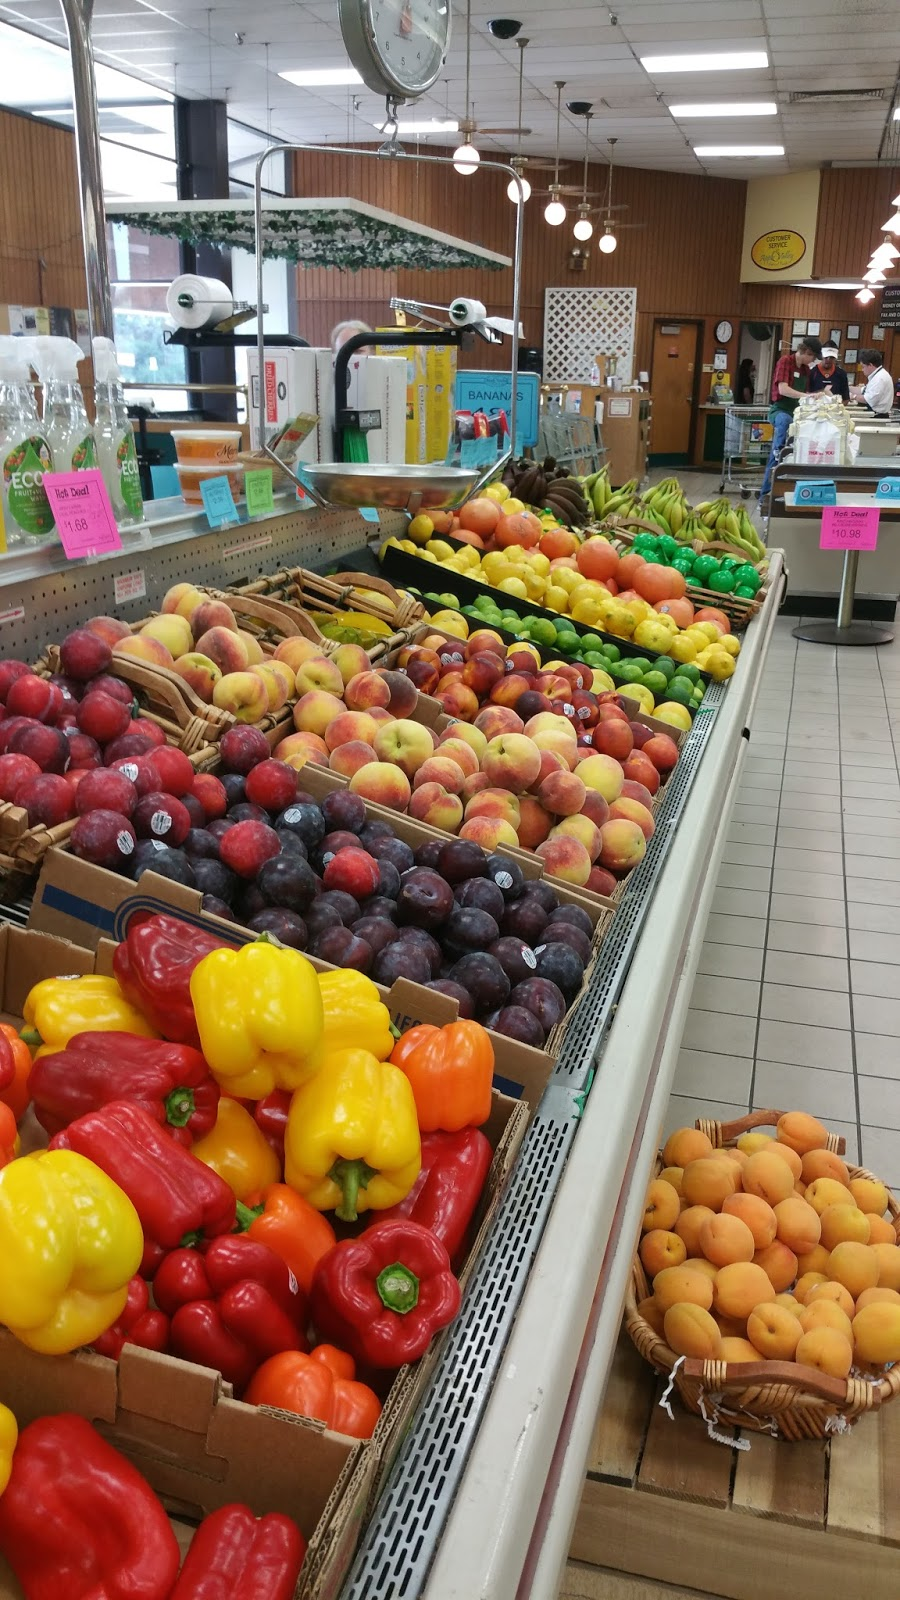 Apple Valley Natural Foods, Inc. - store  | Photo 9 of 10 | Address: 9067 US Highway 31, Berrien Springs, MI 49103, USA | Phone: (269) 471-3131